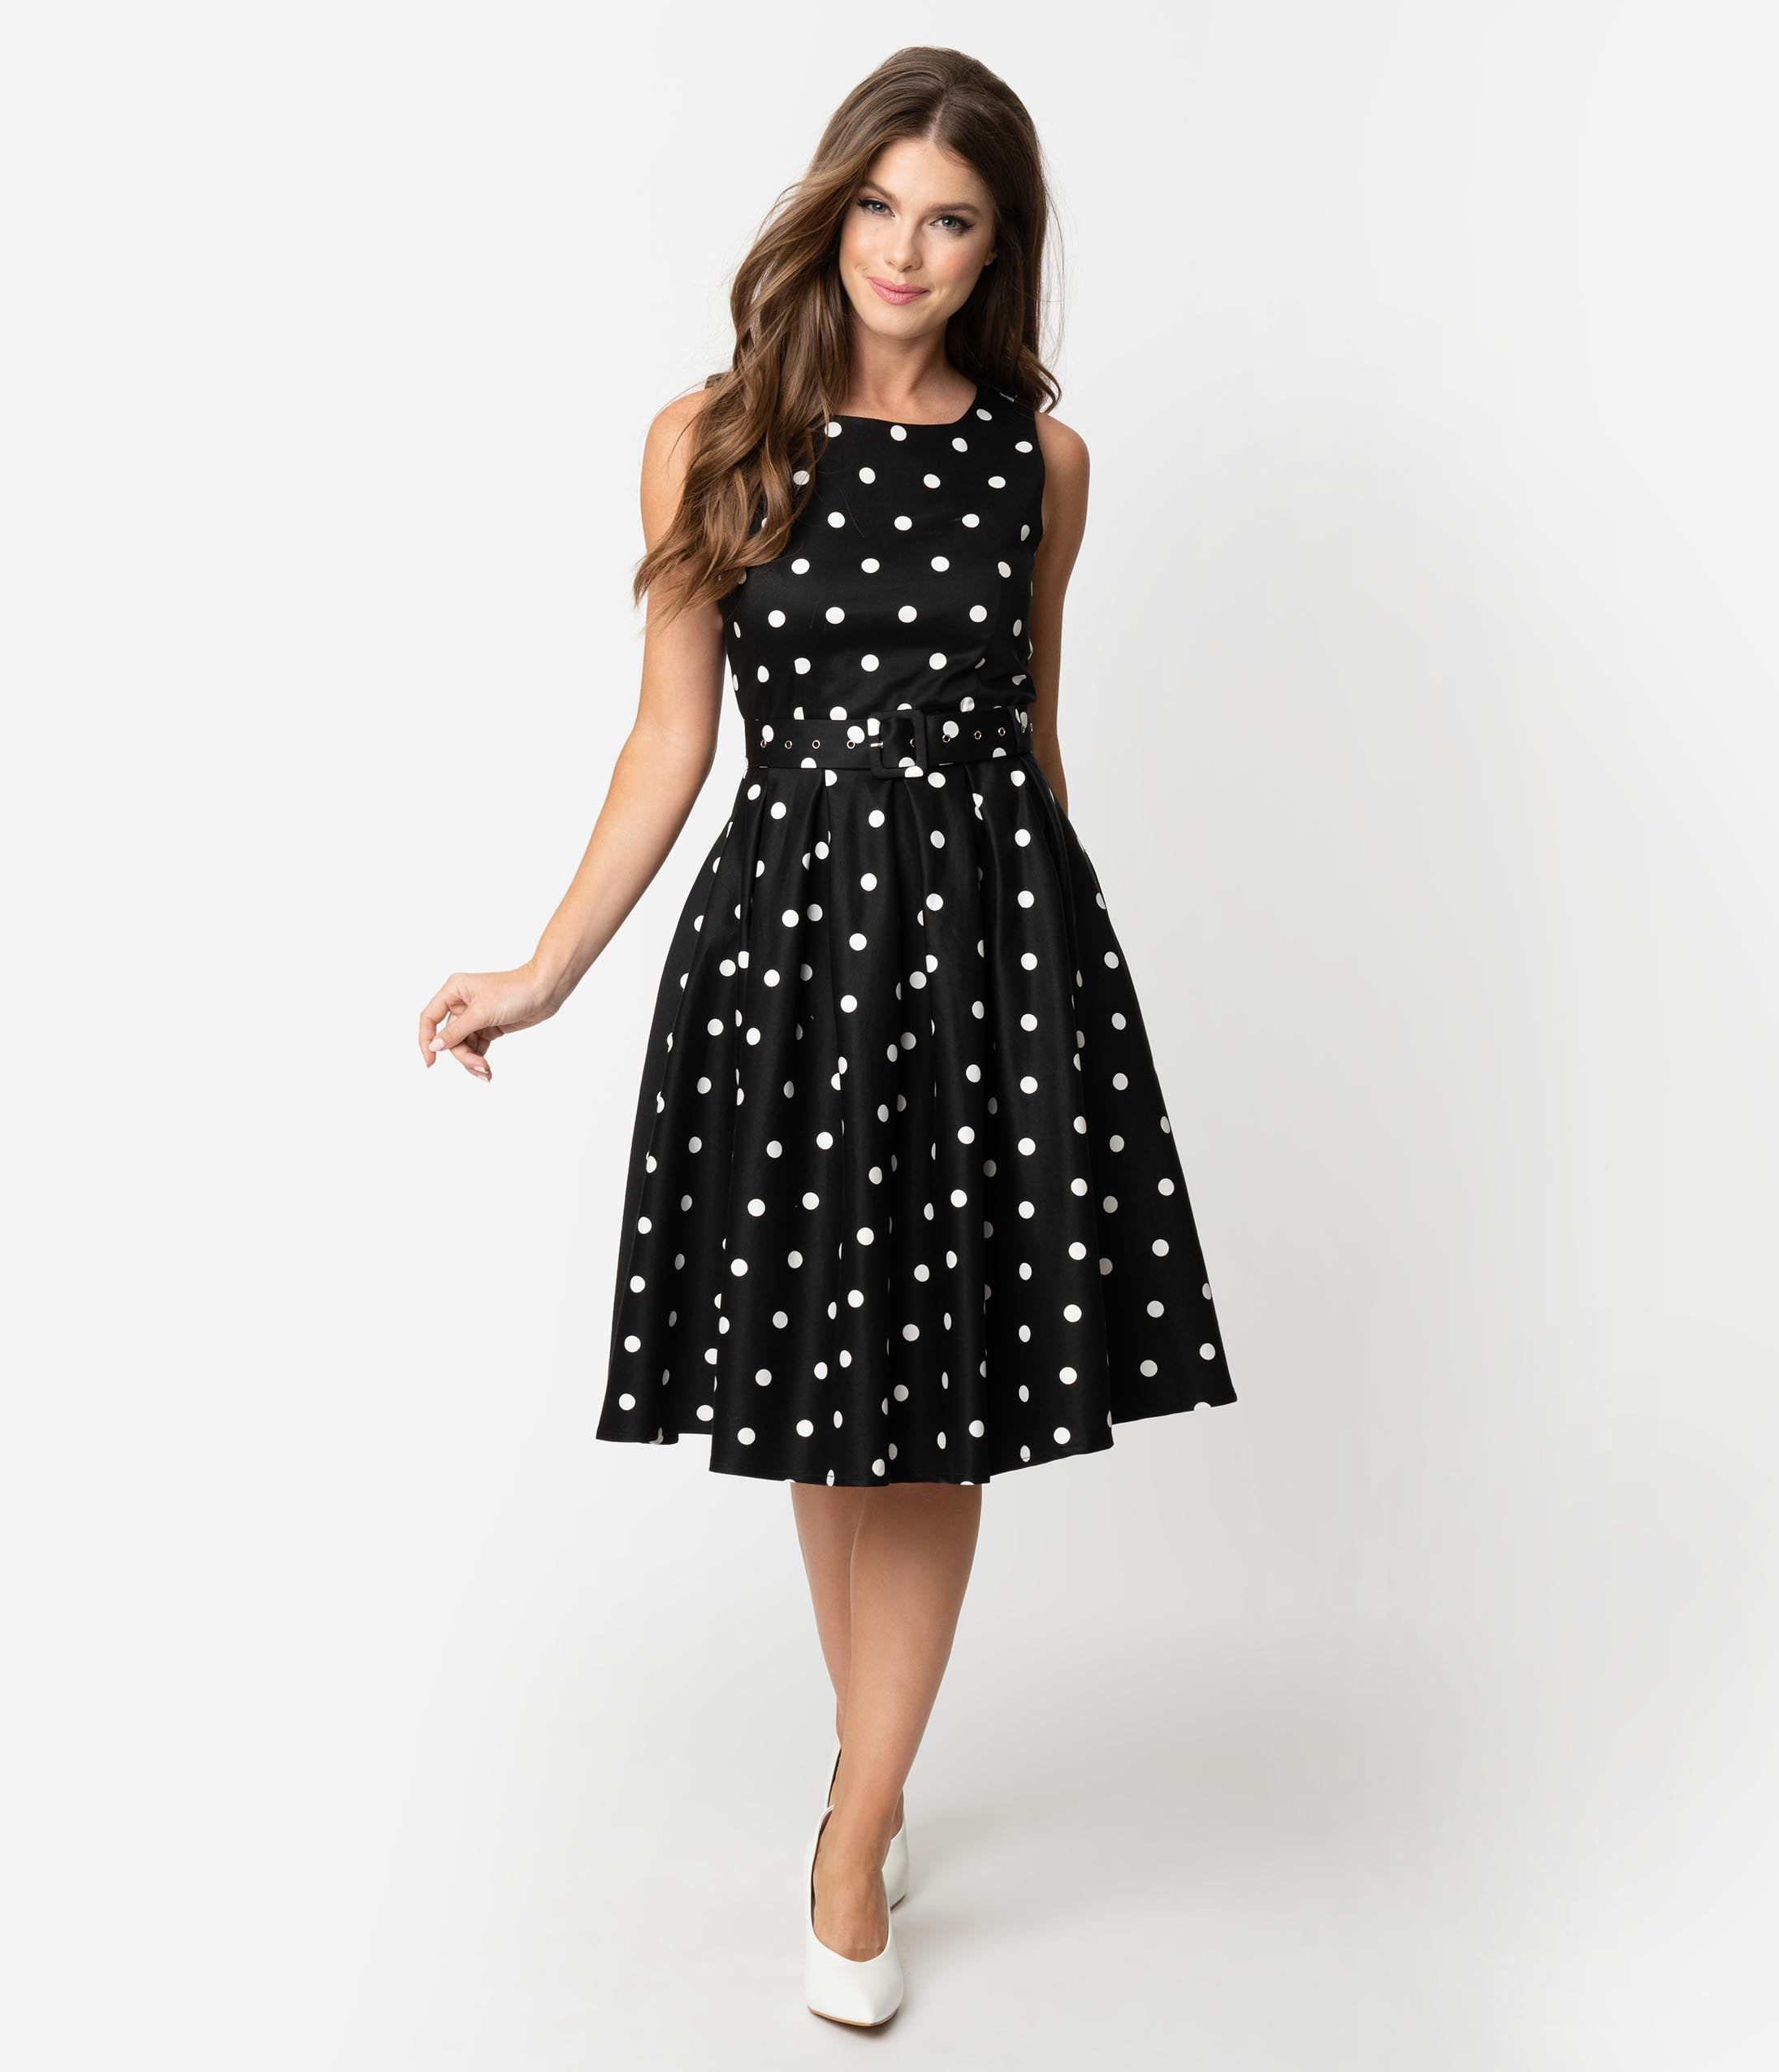 fd452878f4c Vintage Polka Dot Dresses – 50s Spotty and Ditsy Prints Vintage Style Black  White Polka Dot